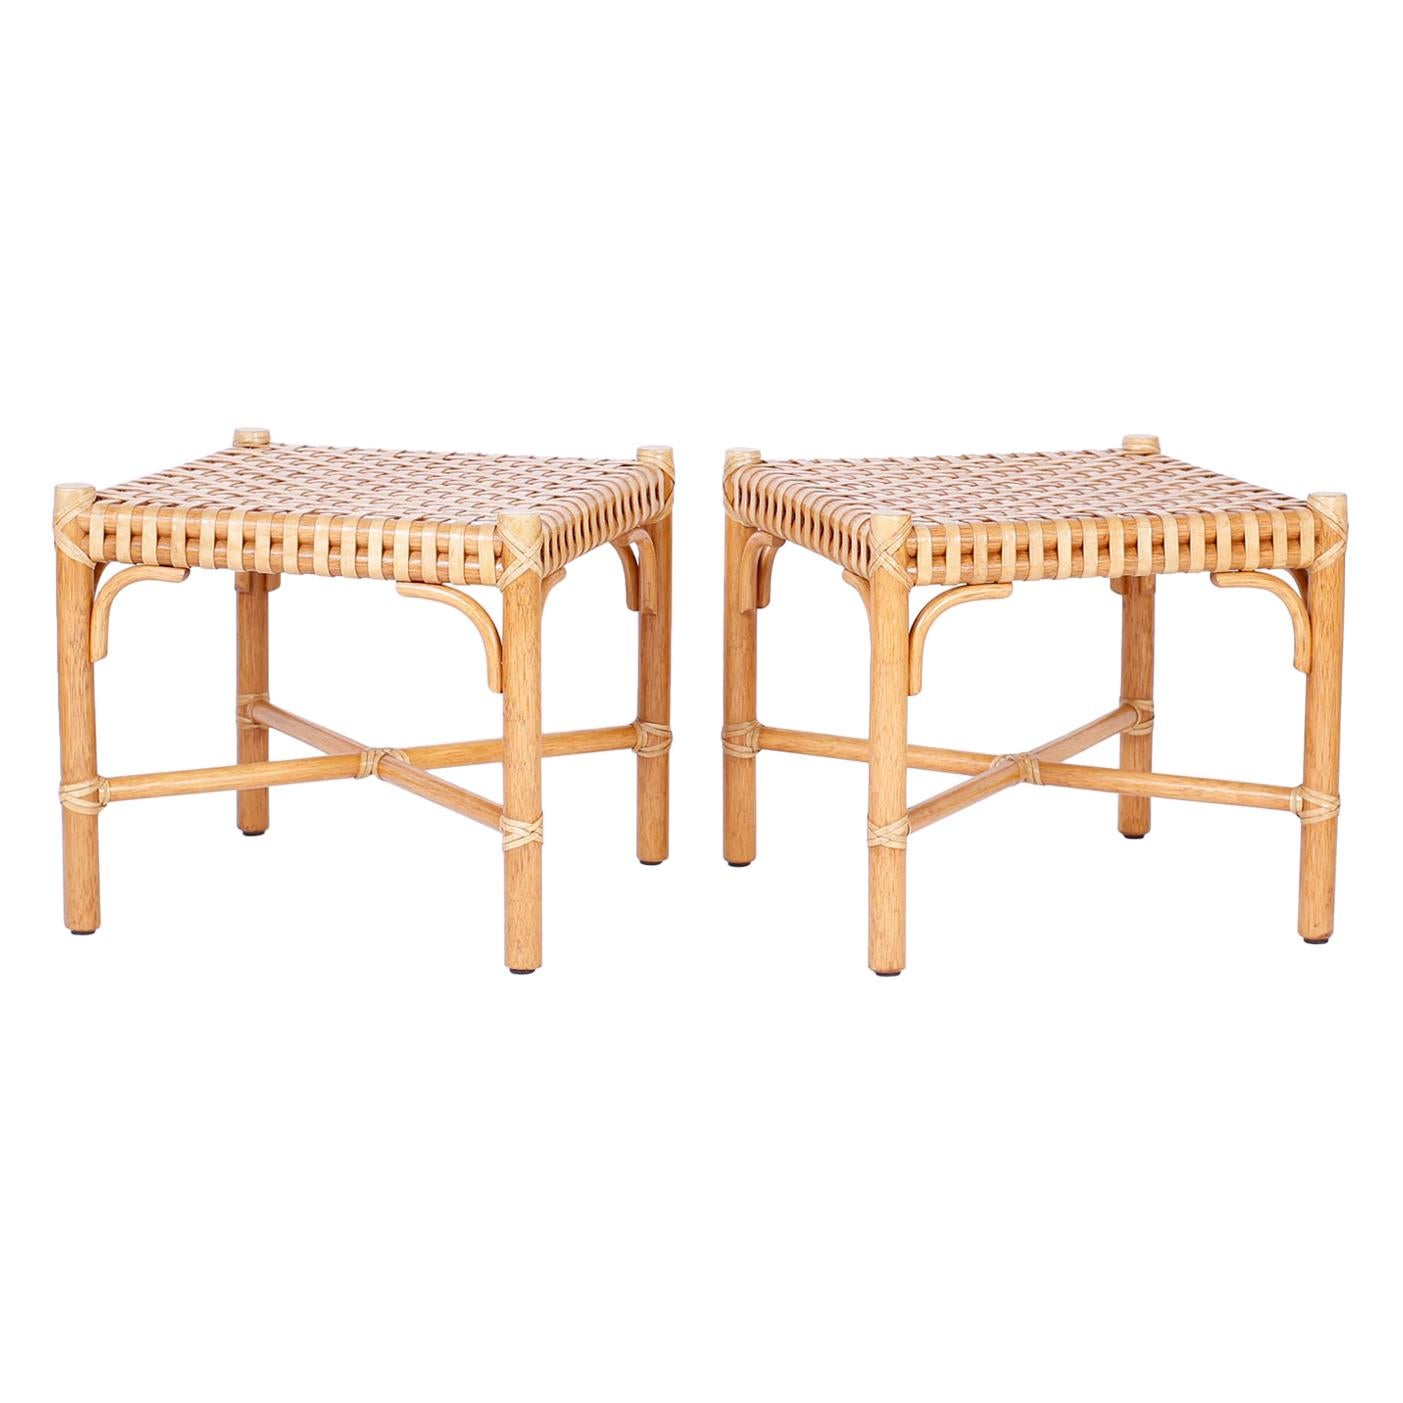 Pair of Ottomans or Foot Stools